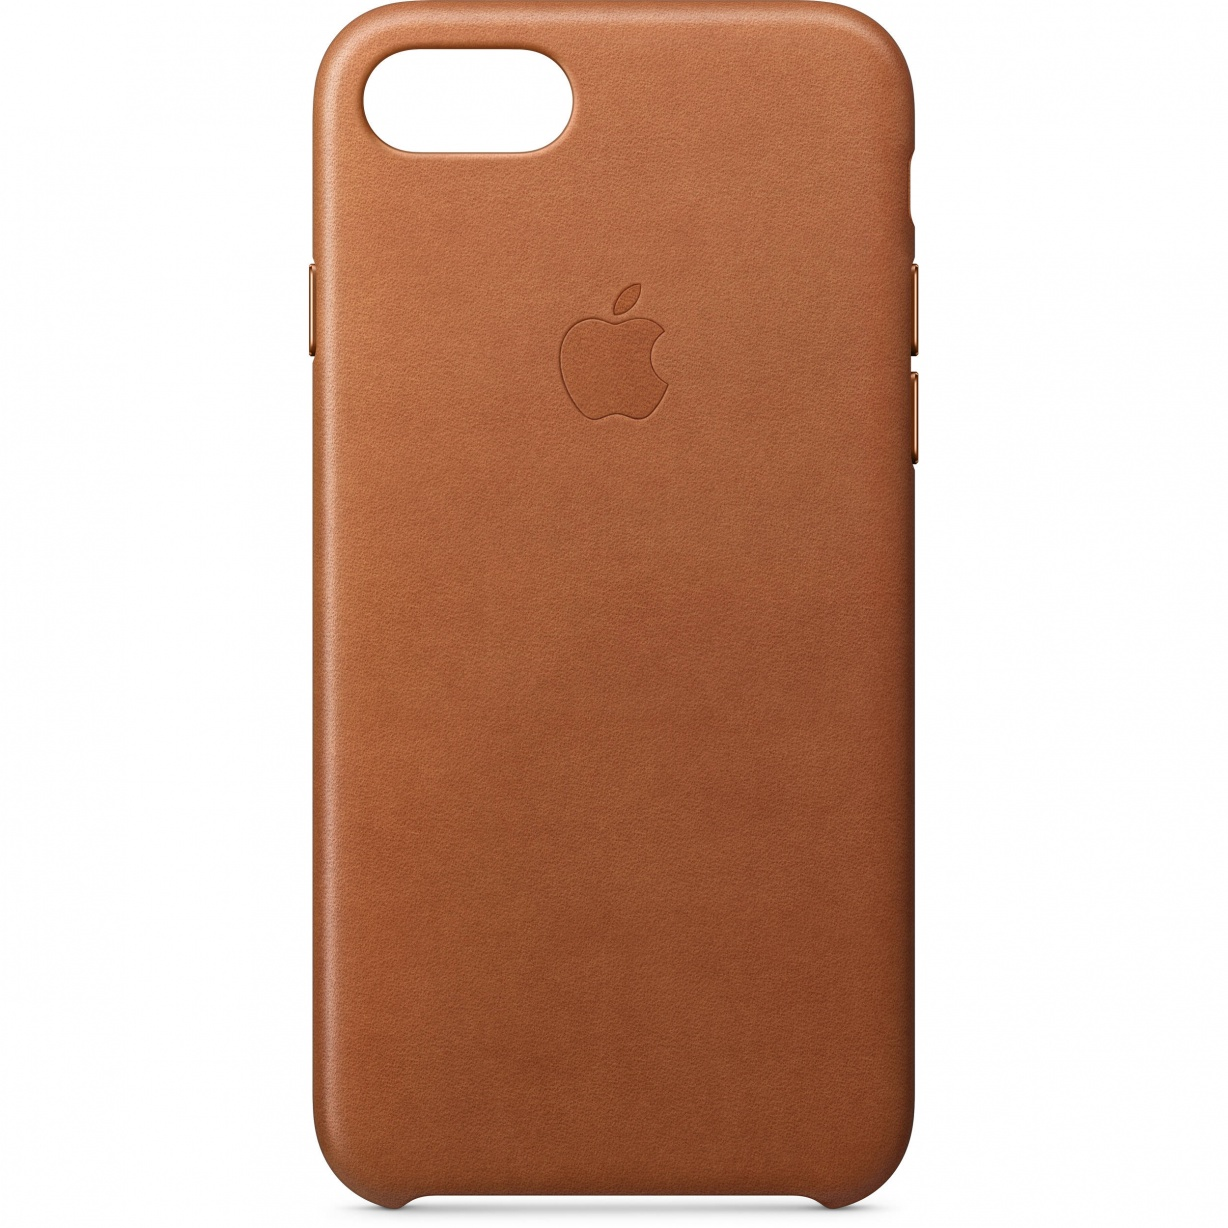 Nugarėlė Apple iPhone 7/8 Leather Case Saddle Brown